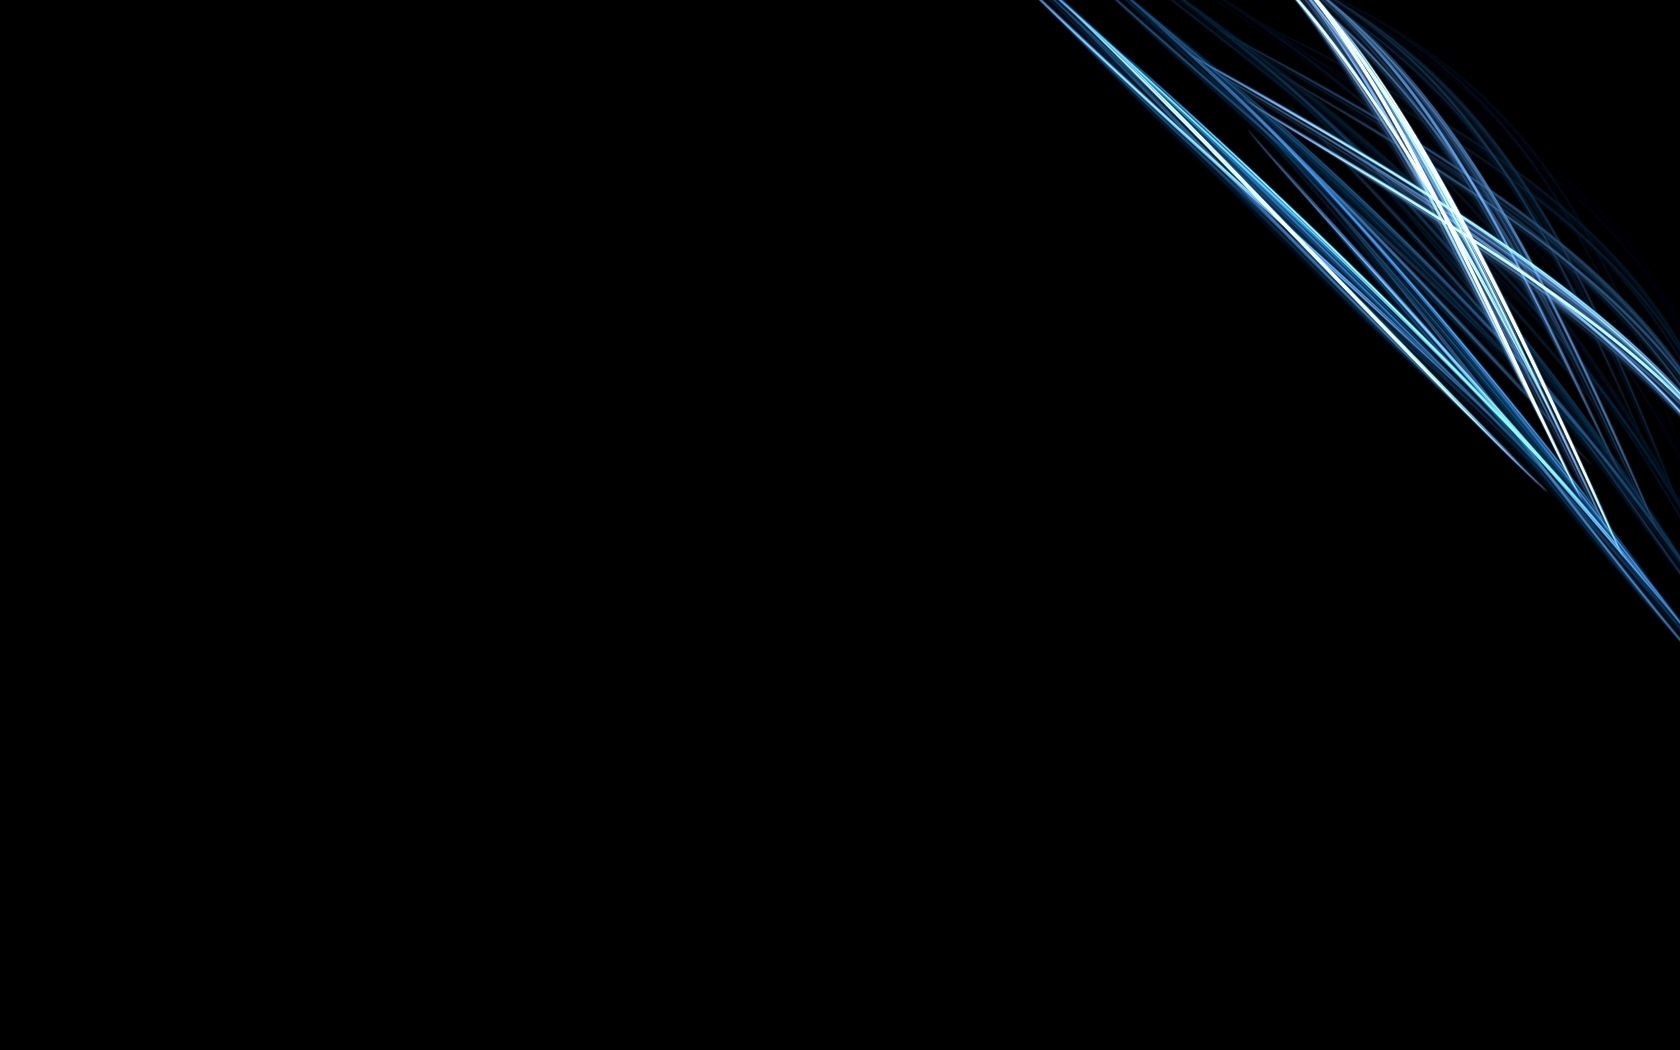 black blue abstract wallpaper 2026 hd wallpapersjpg 1680x1050